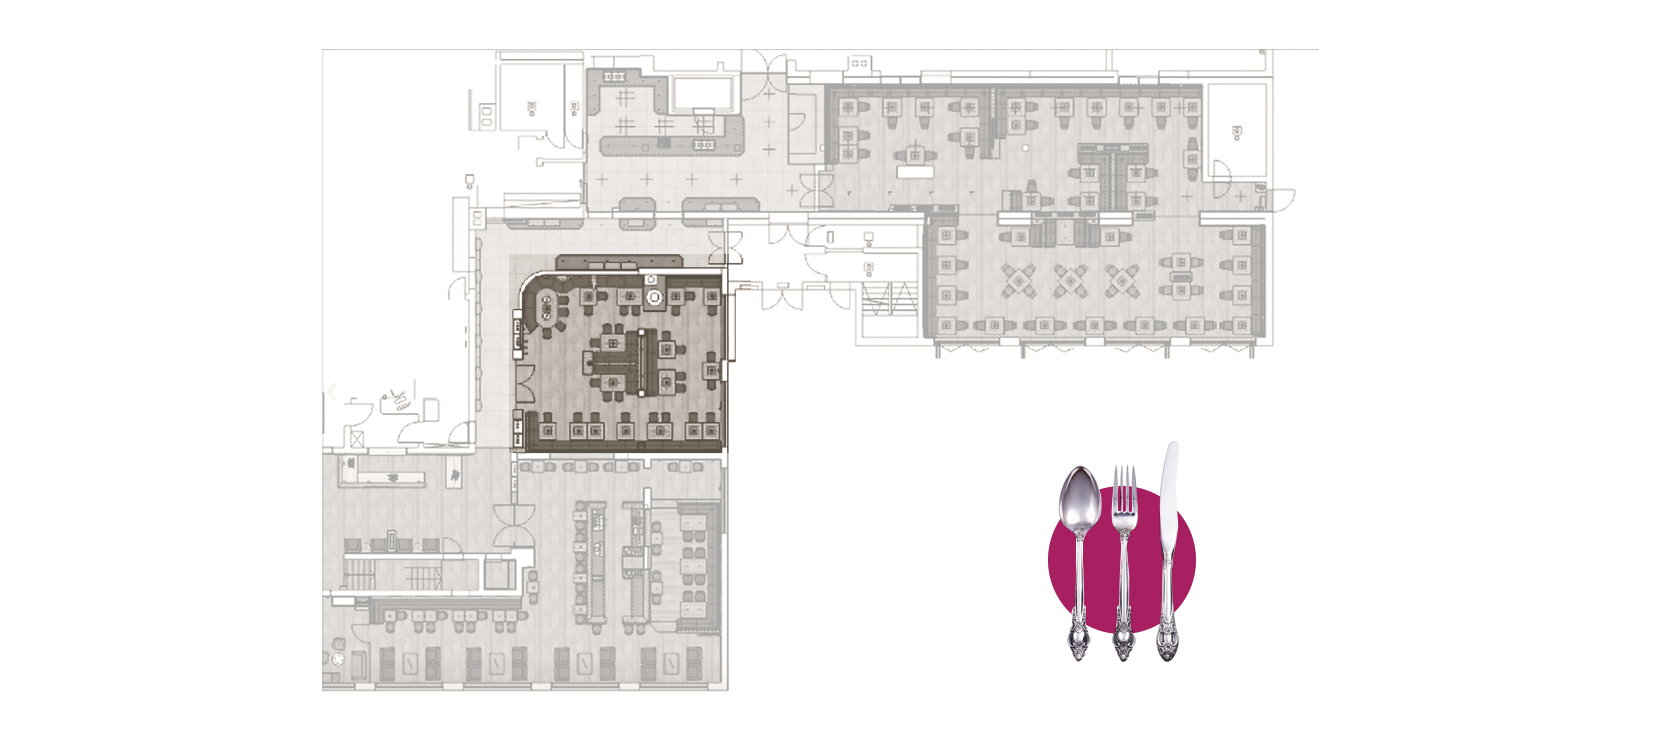 Zumkoch La Carte Restaurant Hoamatkch Schematic We Can Offer Coffee Cake And Snacks From 130 Pm To 600